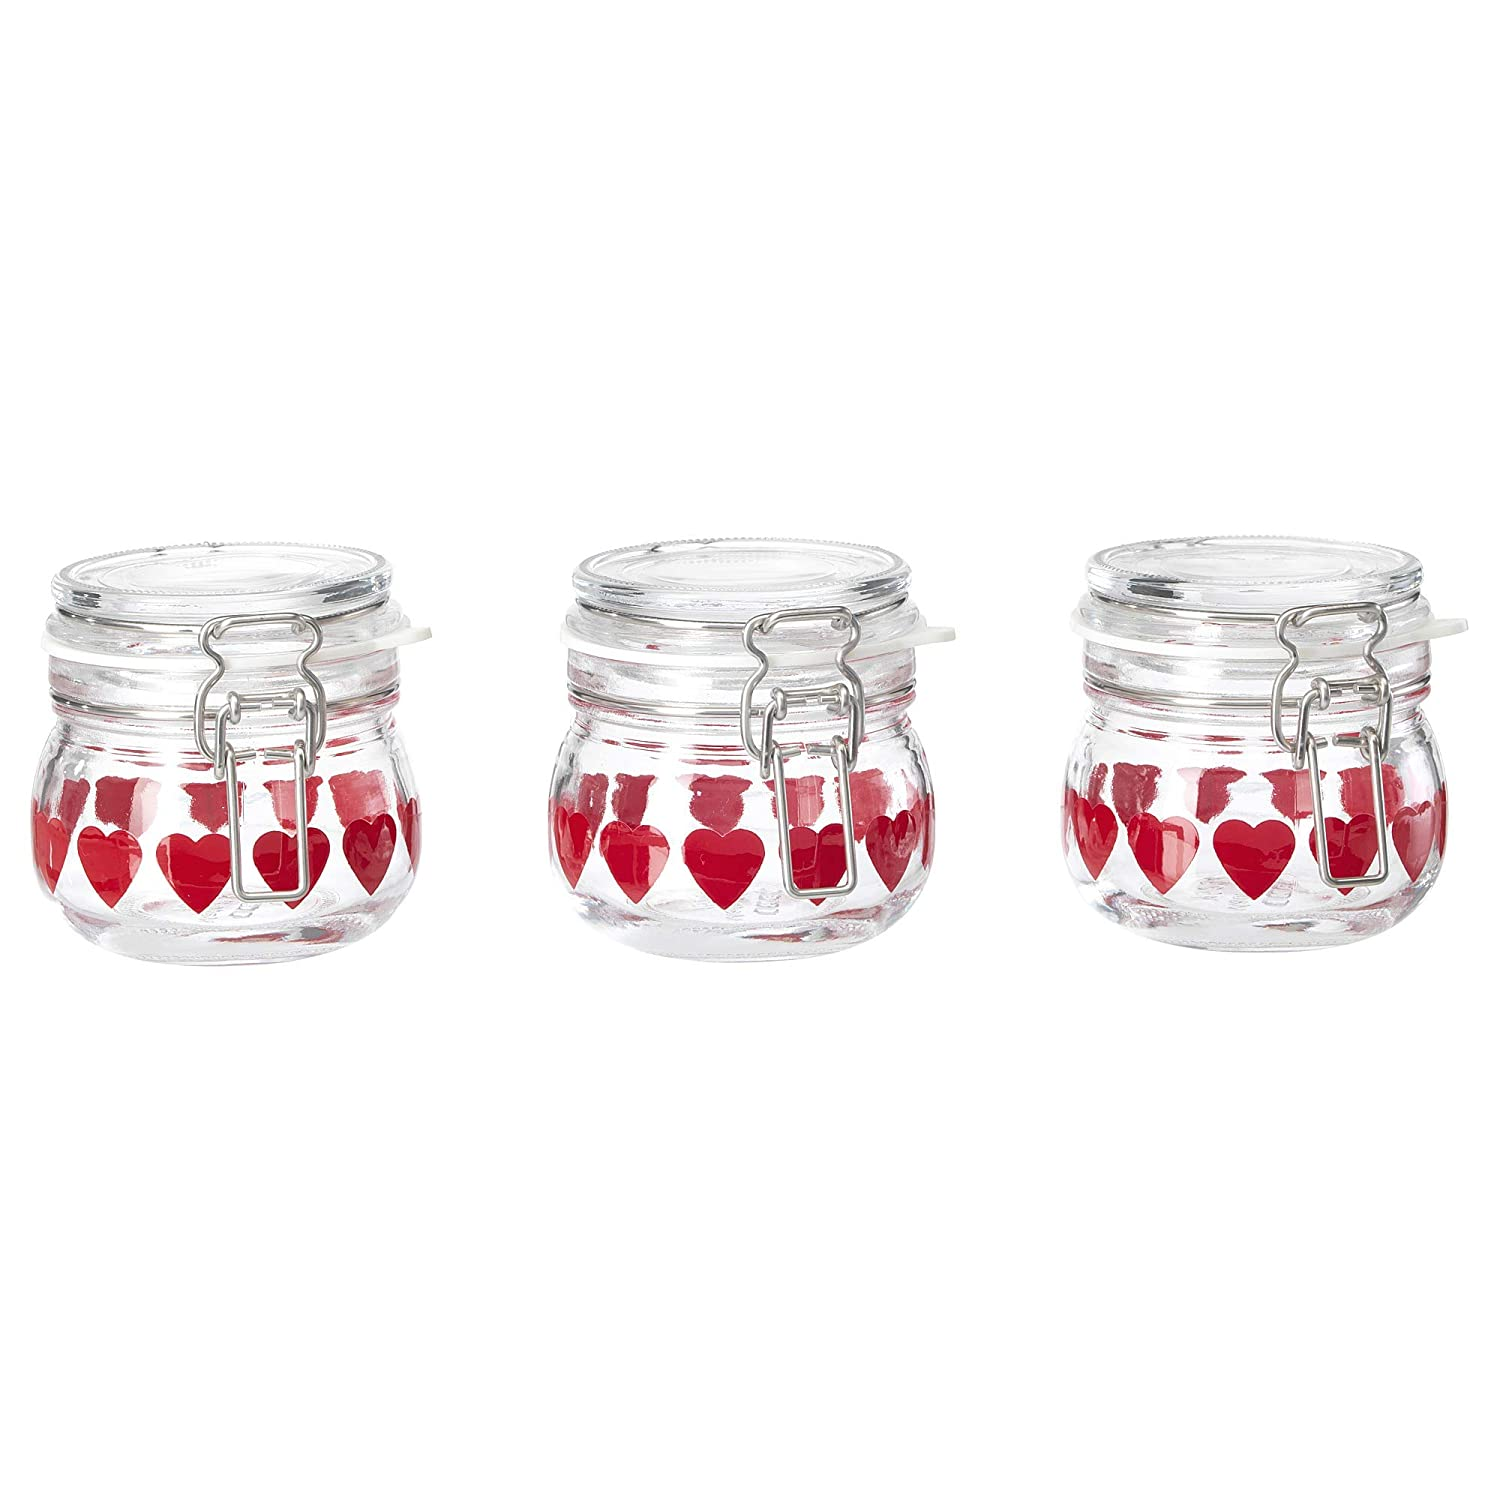 IKEA 504.031.55 Vinter 2018 Jar With Lid, Glass